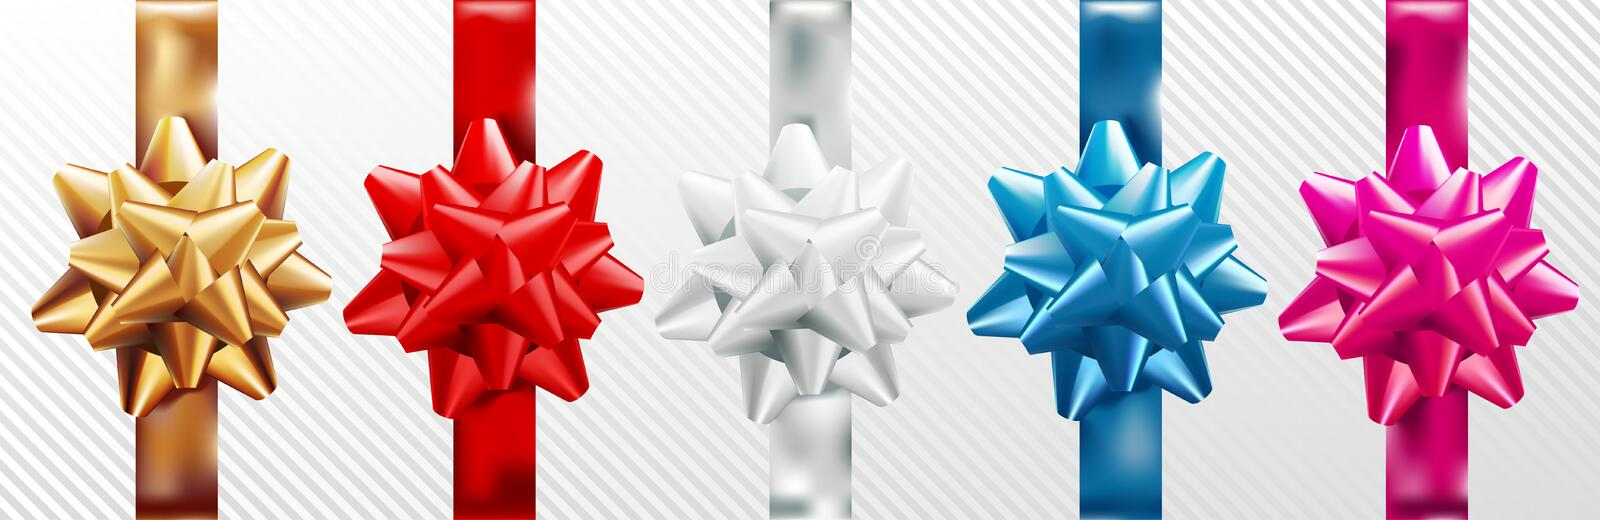 Golden, red, silver, blue, pink gift bow set with vertical ribbon. Isolated on white background. Vector illustration stock illustration